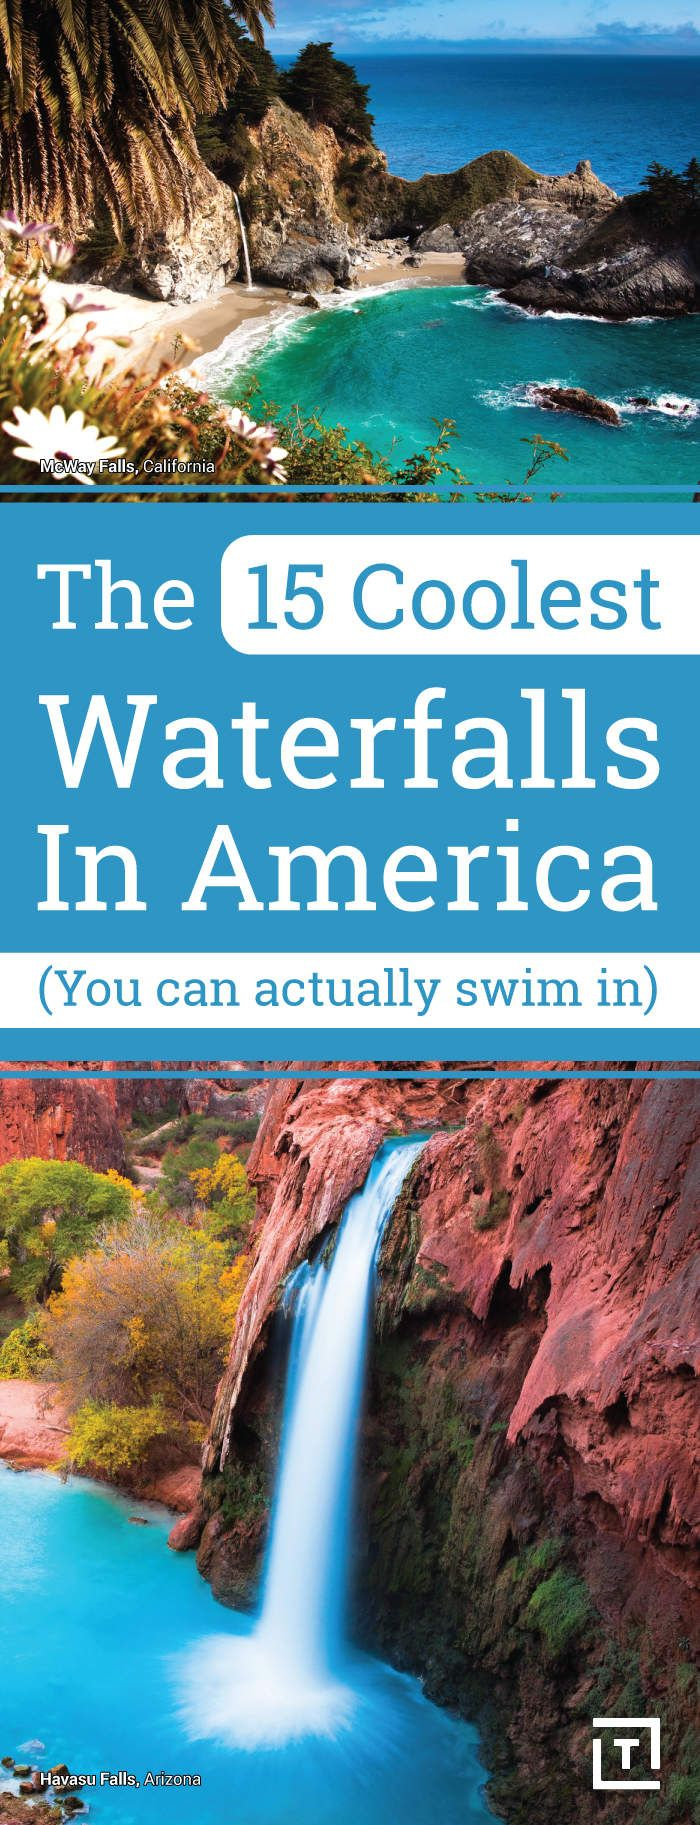 The 15 Coolest Waterfalls in America (You Can Actually Swim In)